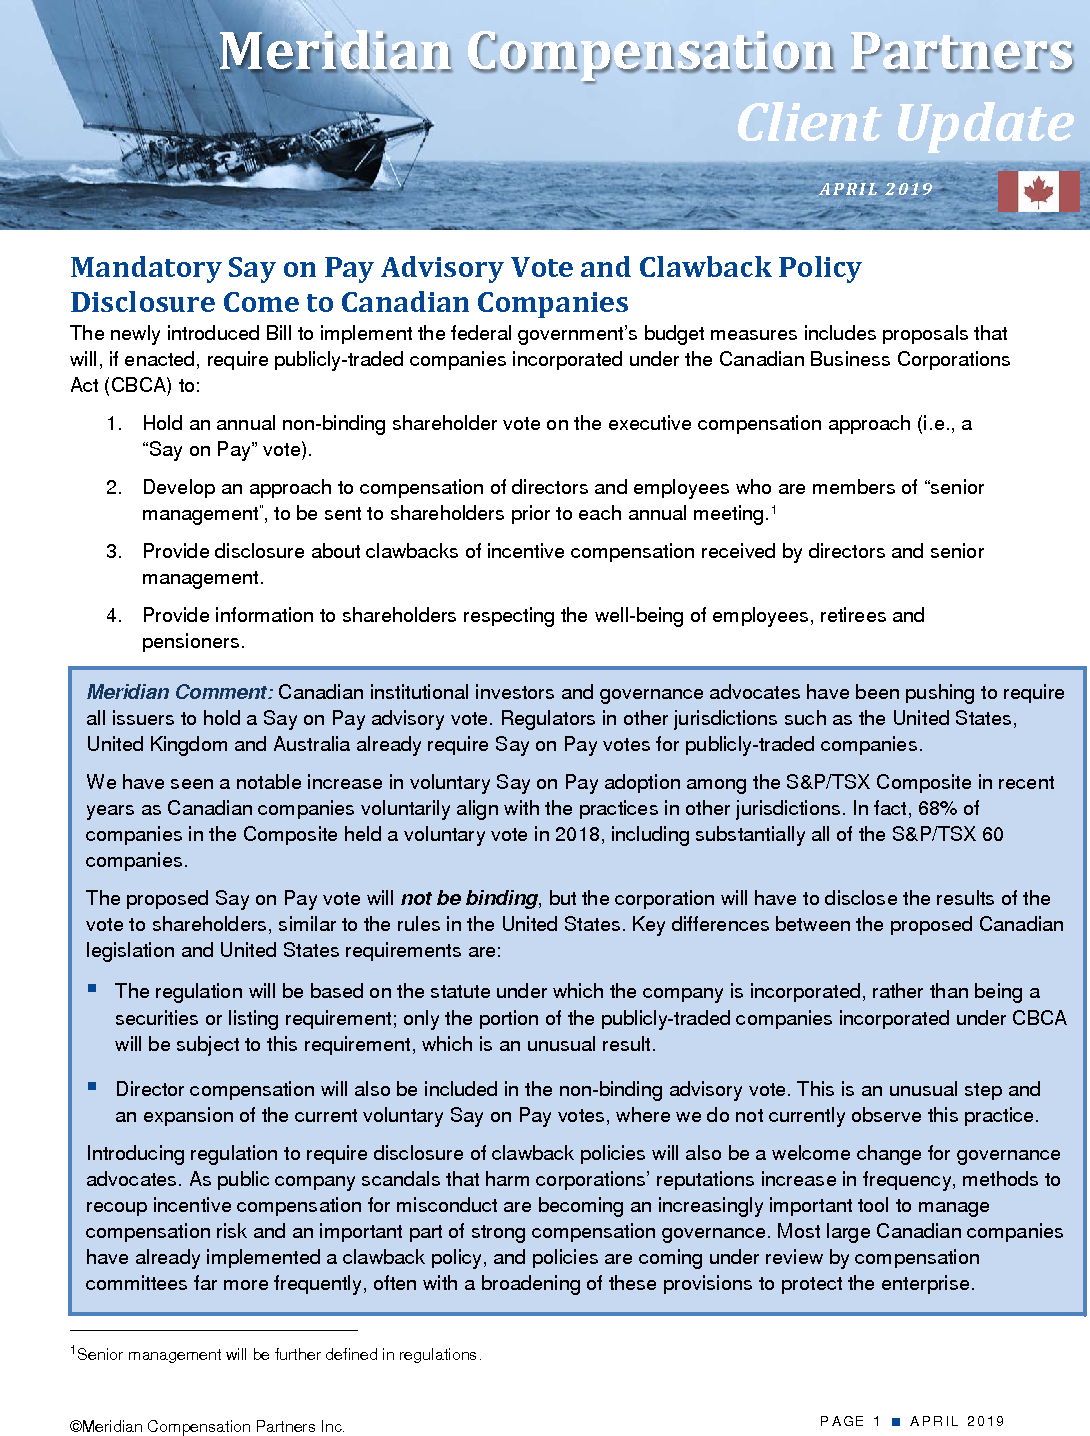 Mandatory Say on Pay Advisory Vote and Clawback Policy Disclosure Come to Canadian Companies (PDF)